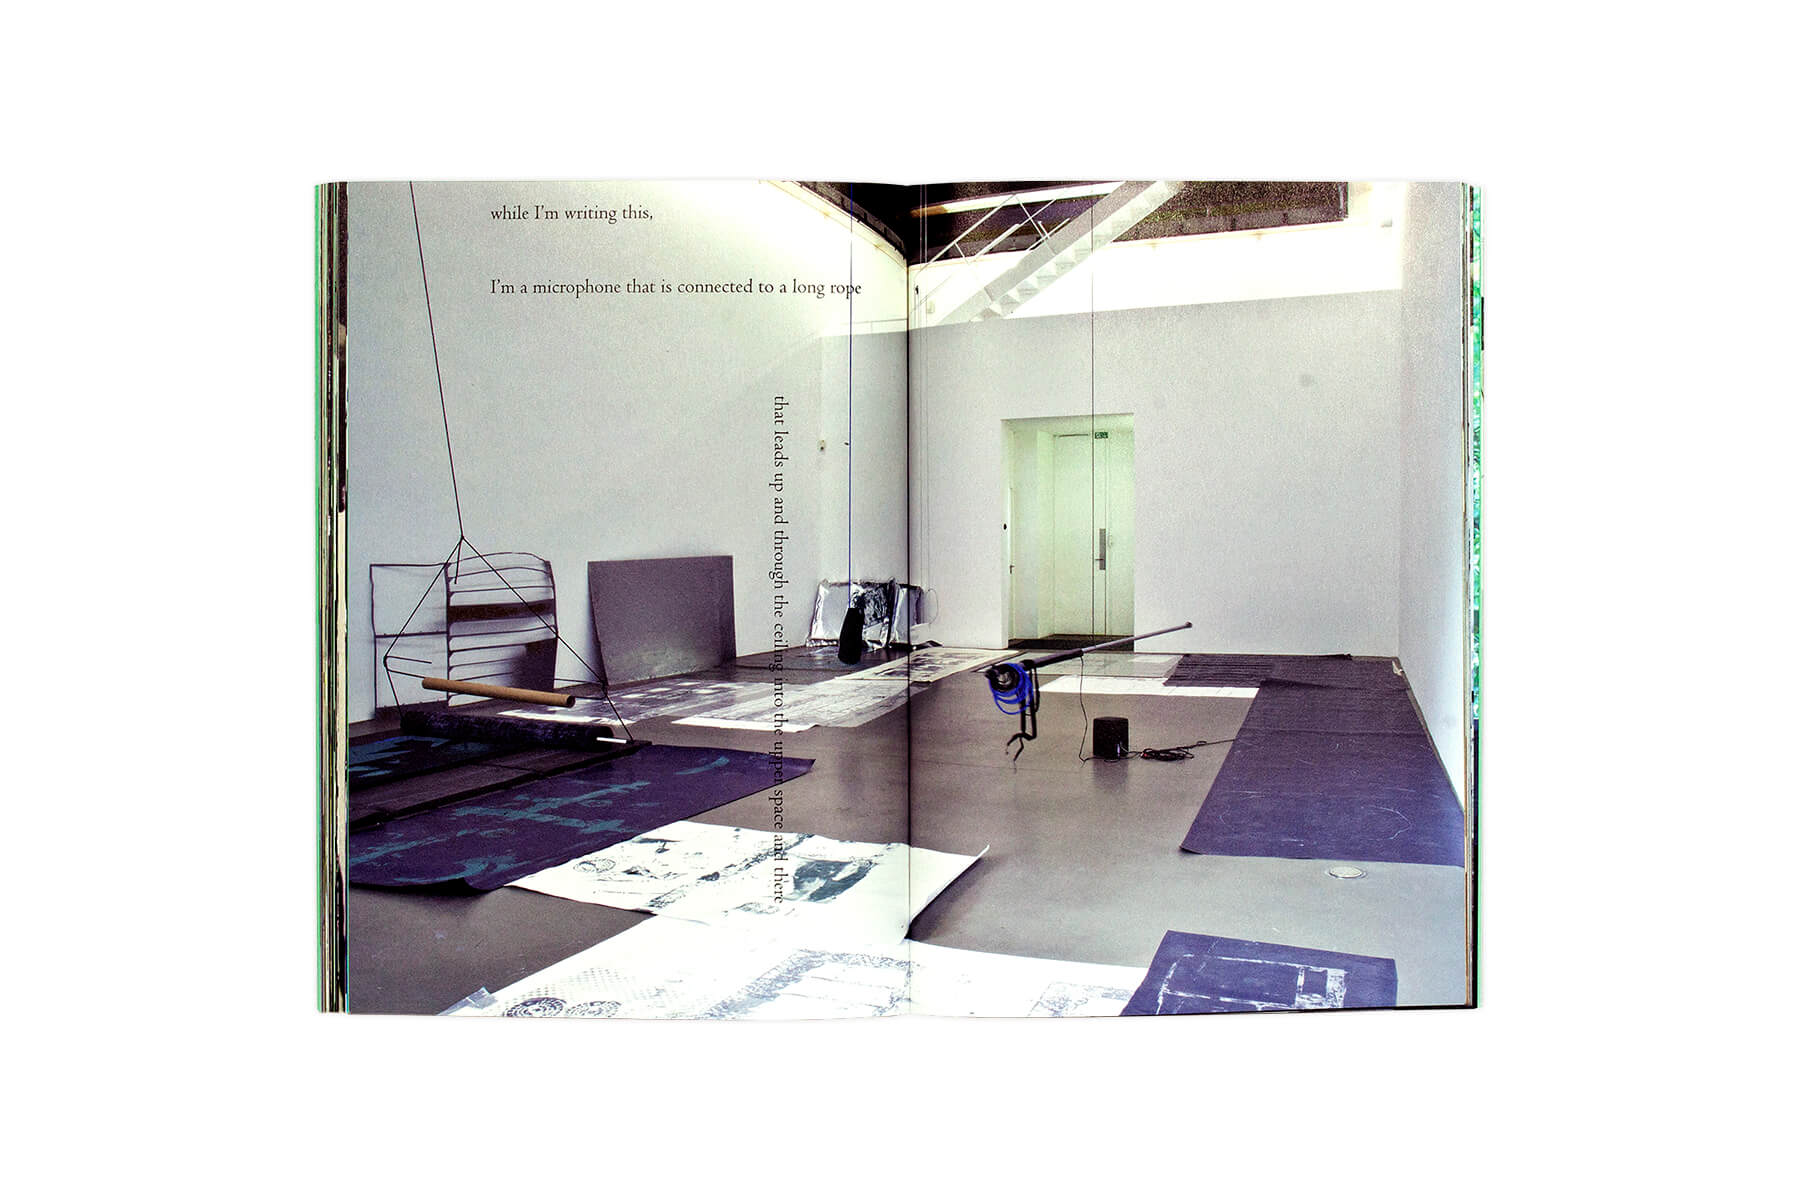 Product image of Nora Schultz: Portikus Printing Plant and Portikus Sound